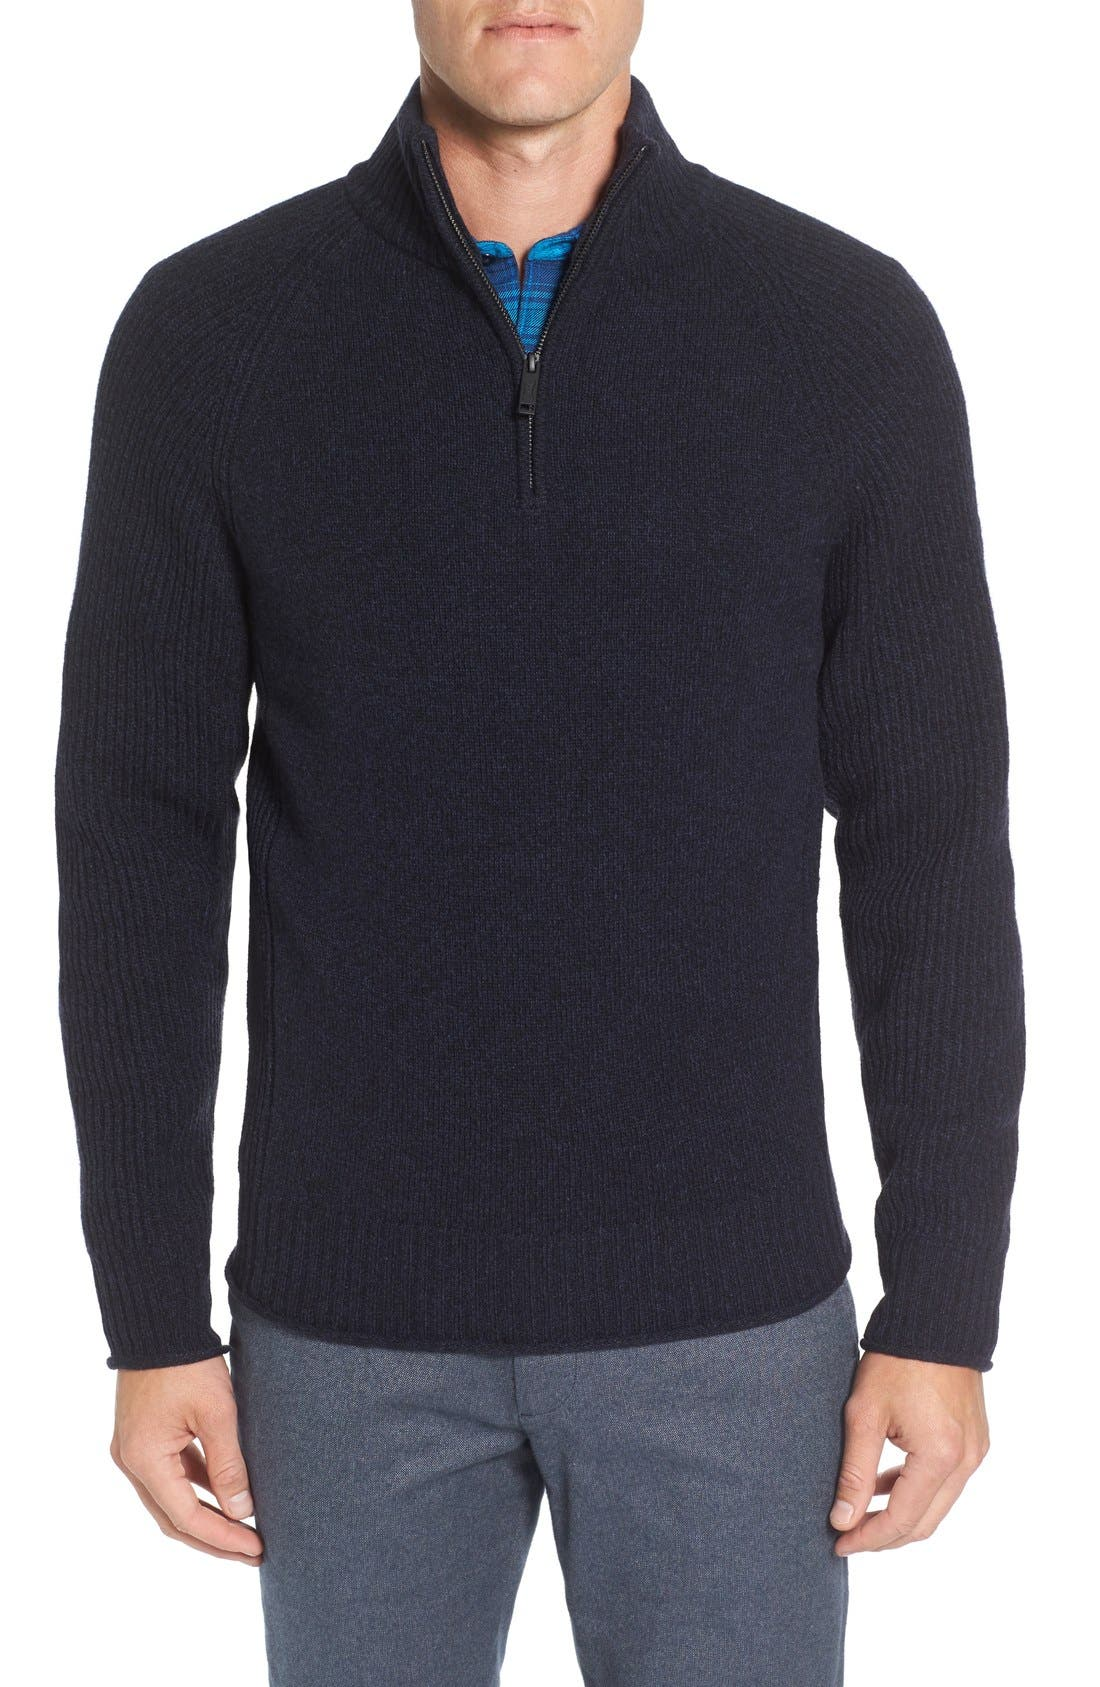 Stredwick Lambswool Sweater,                             Main thumbnail 1, color,                             Midnight